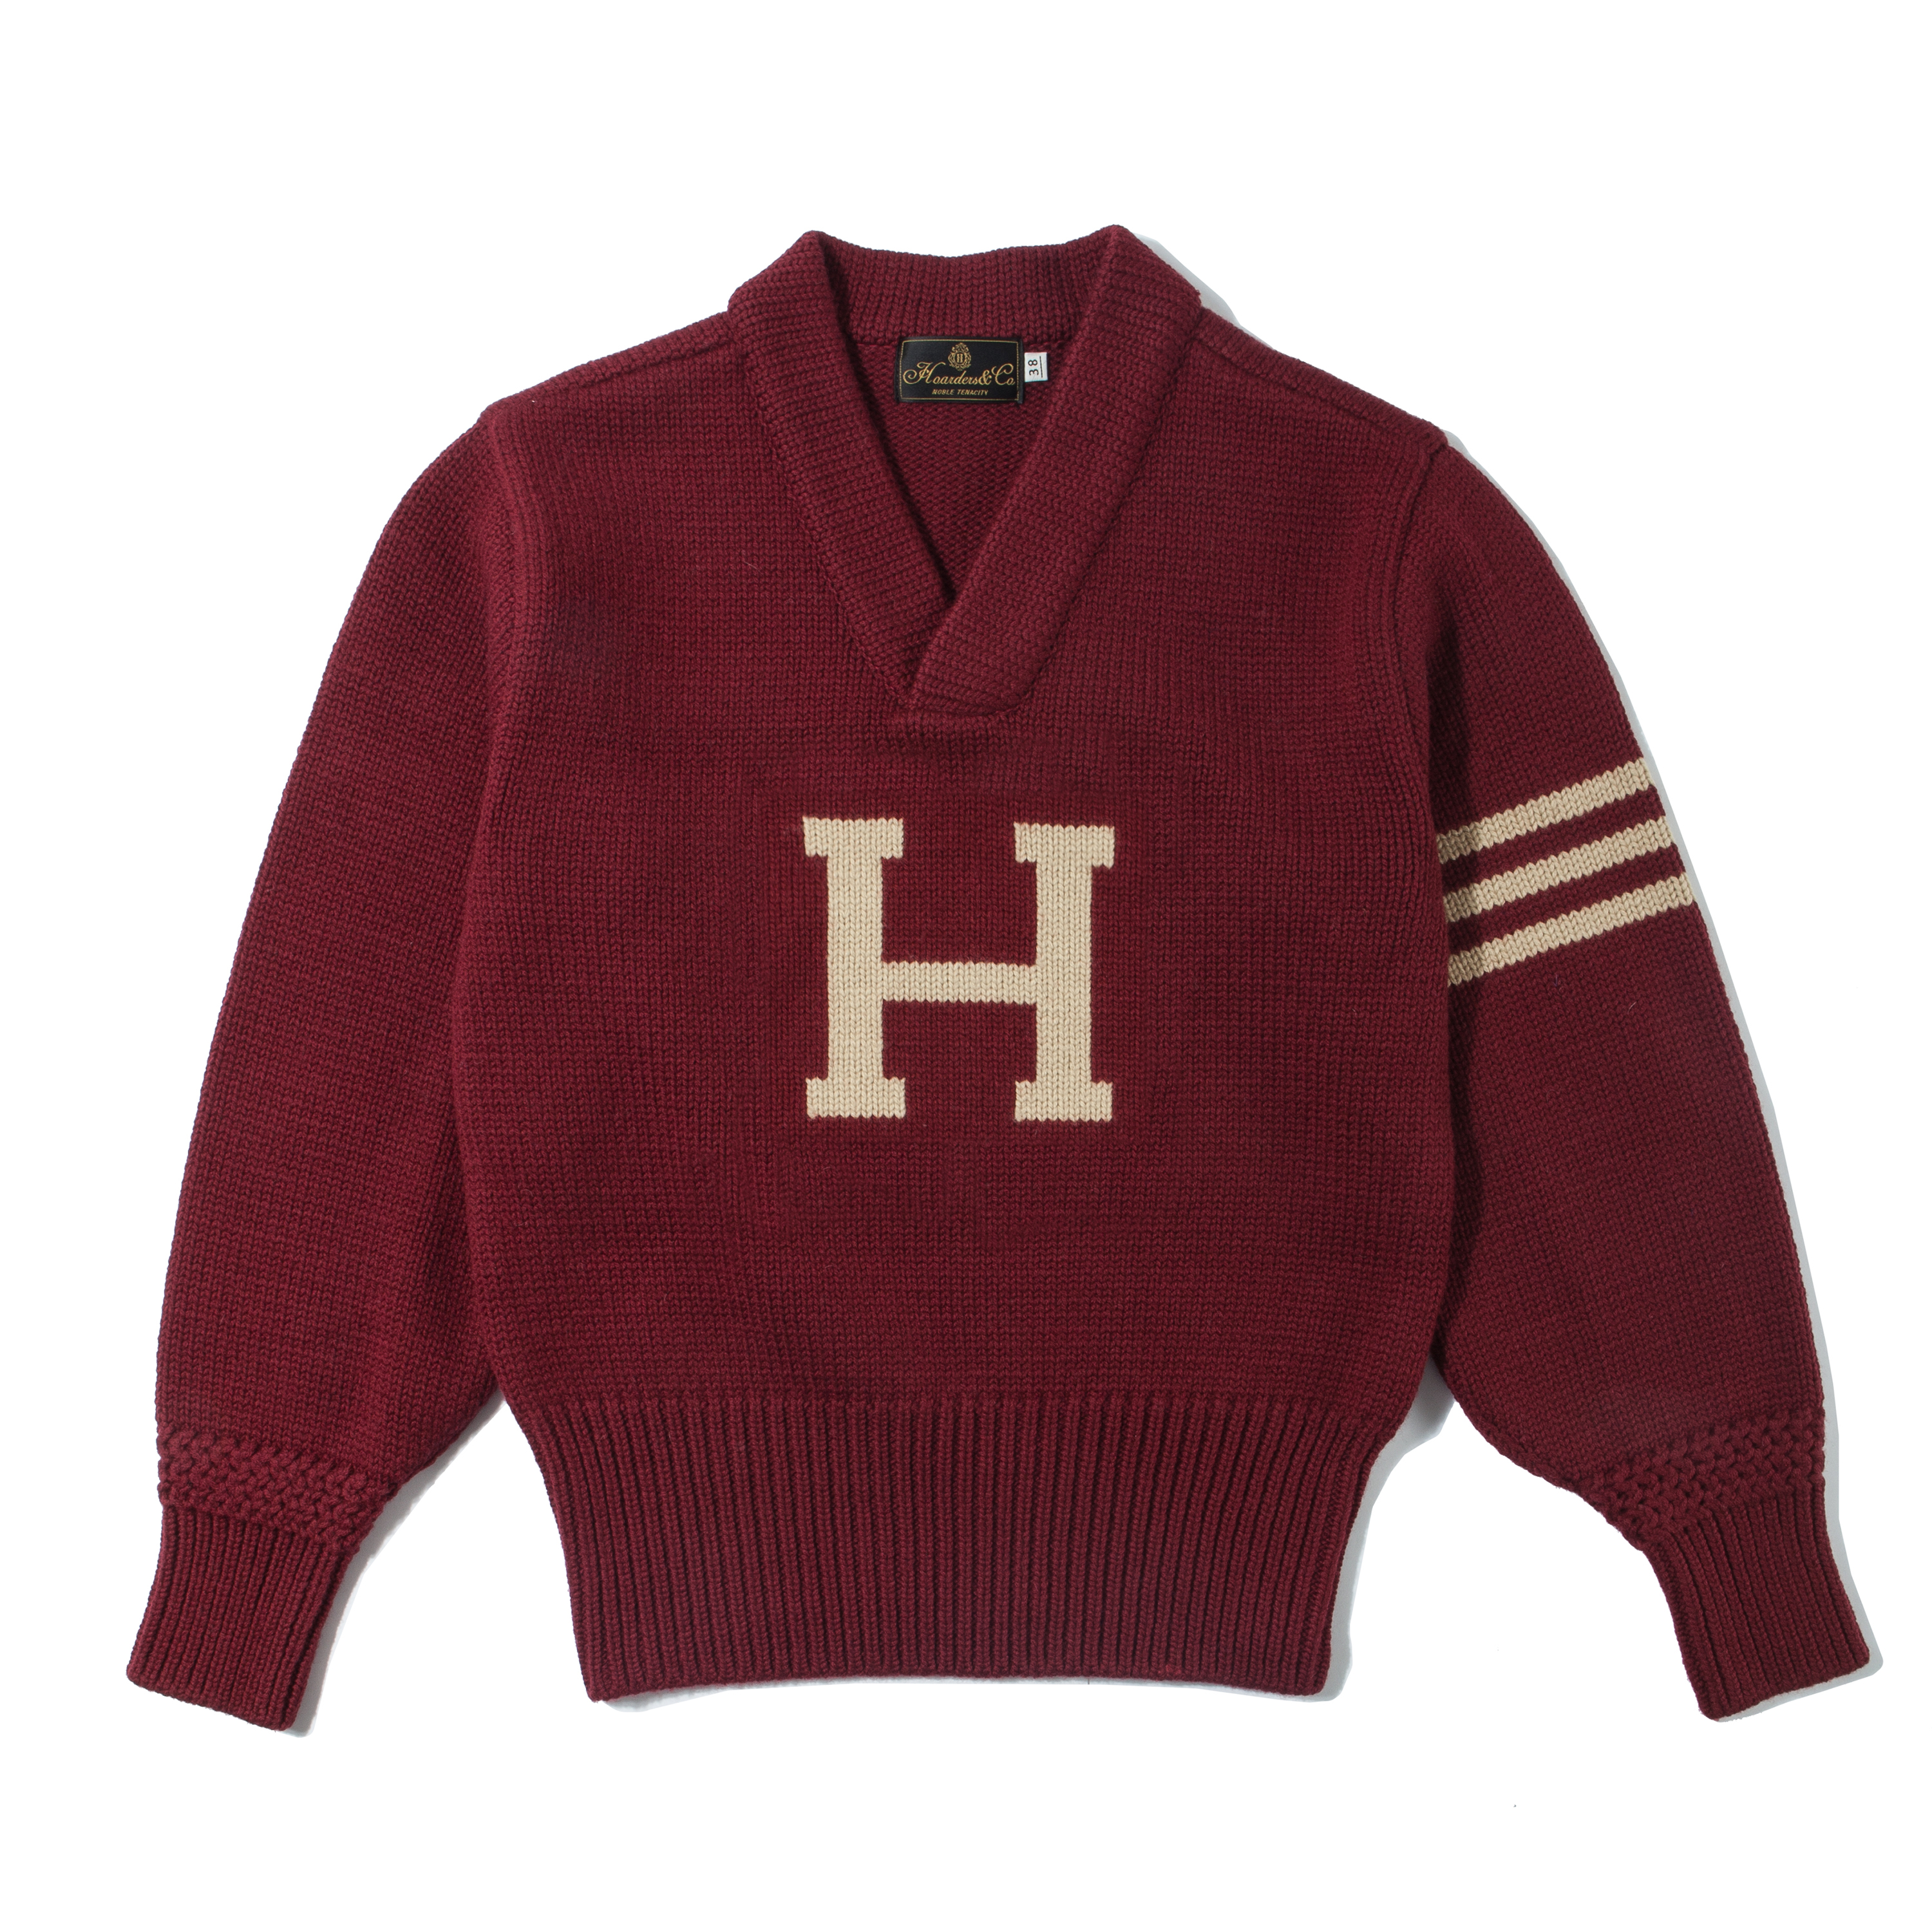 LETTERMAN SWEATER [MAROON RED]